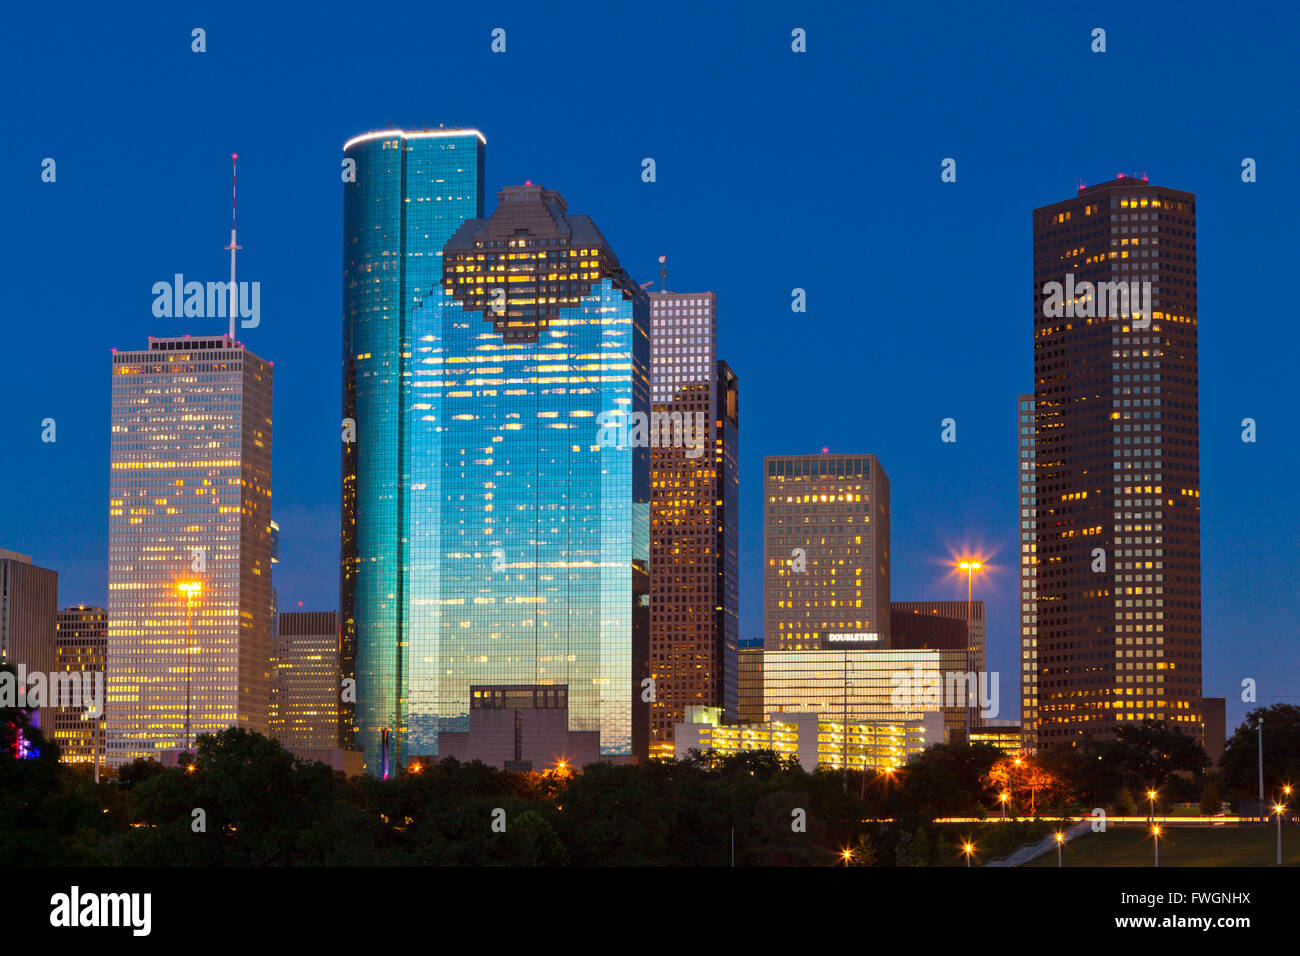 Houston skyline at night from Eleanor Tinsley Park, Texas, United States of America, North America - Stock Image